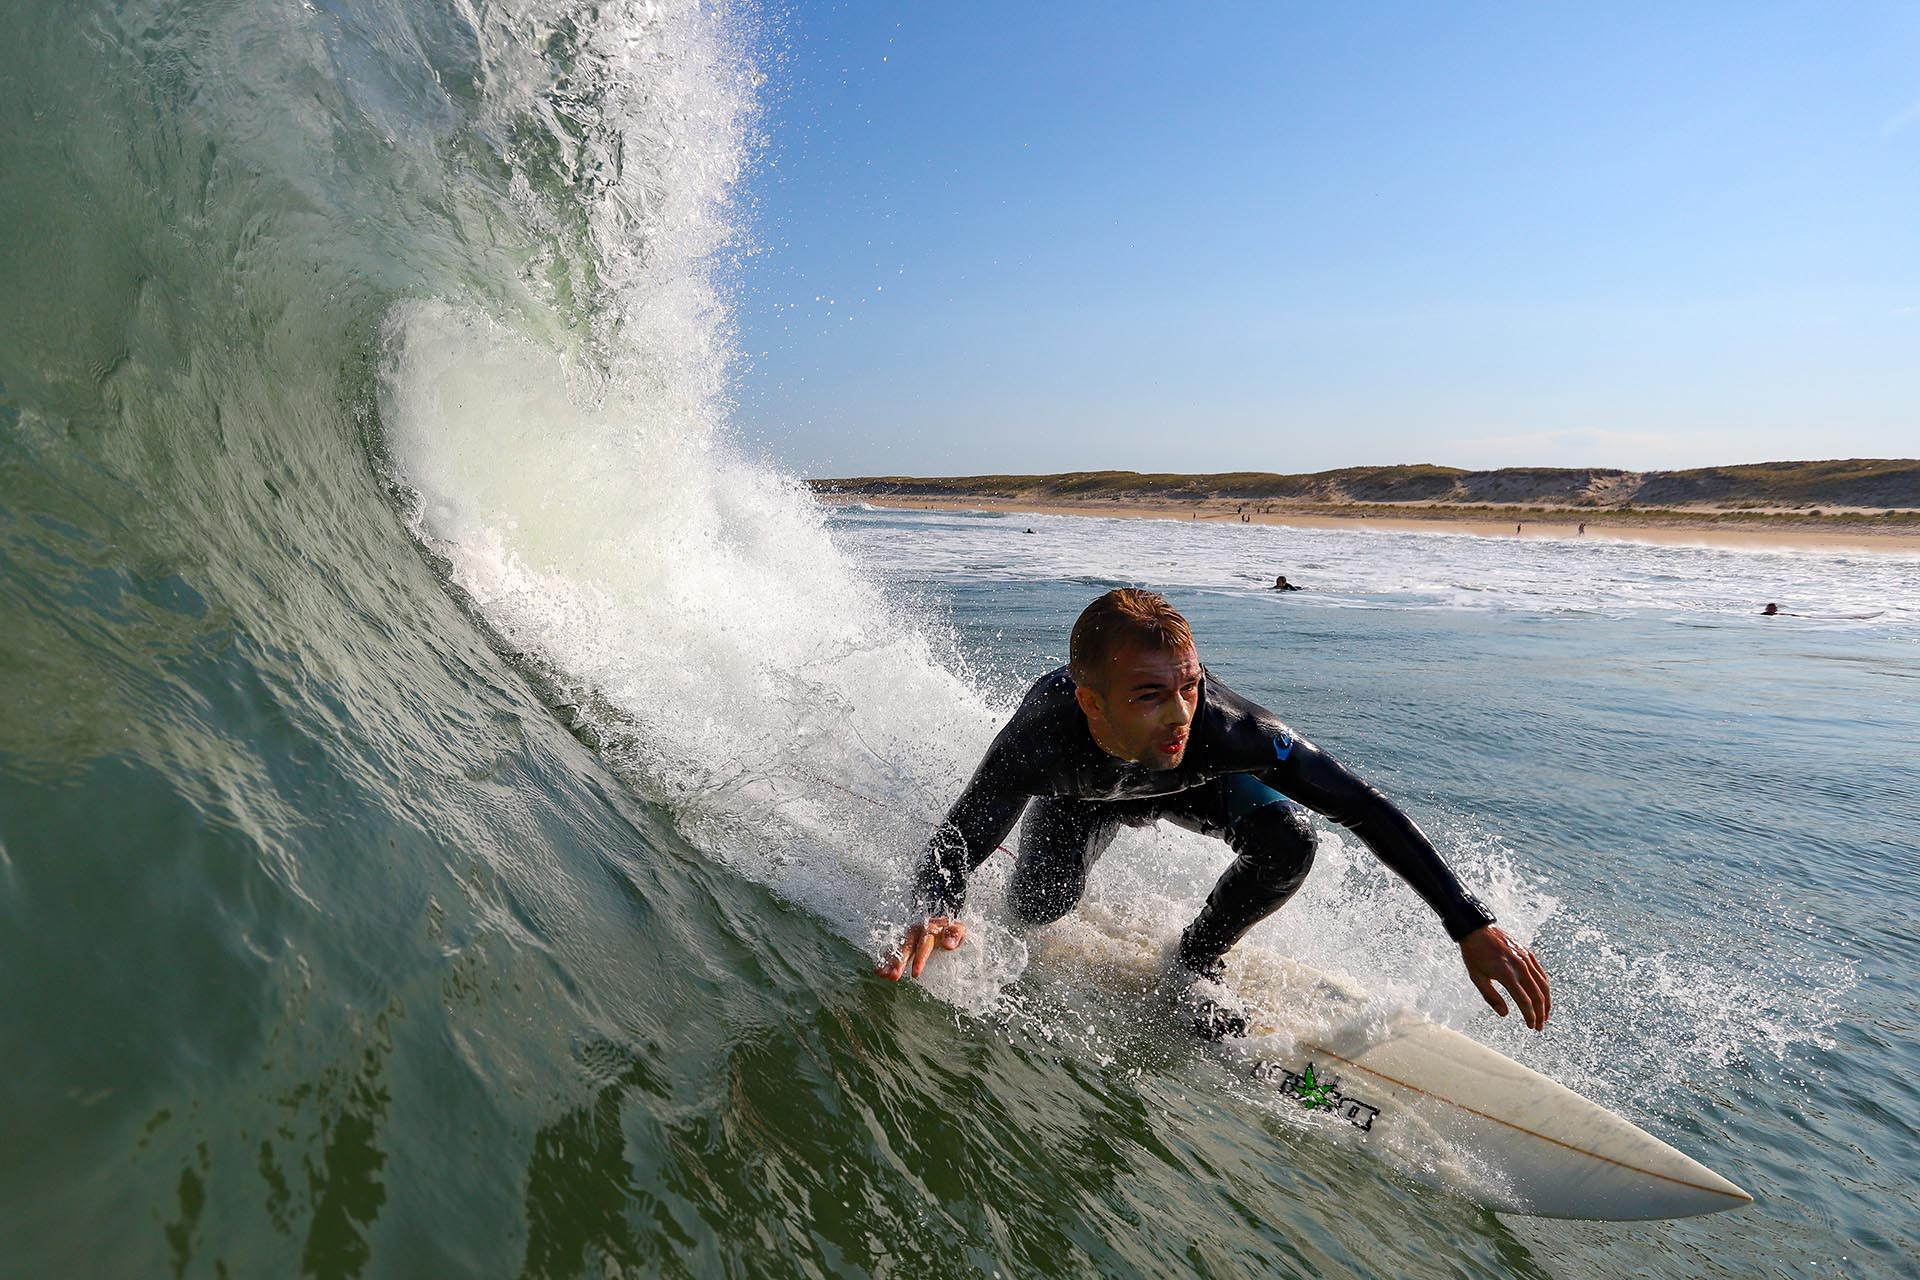 photographe bordeaux surf clement philippon cap ferret gironde aquatique